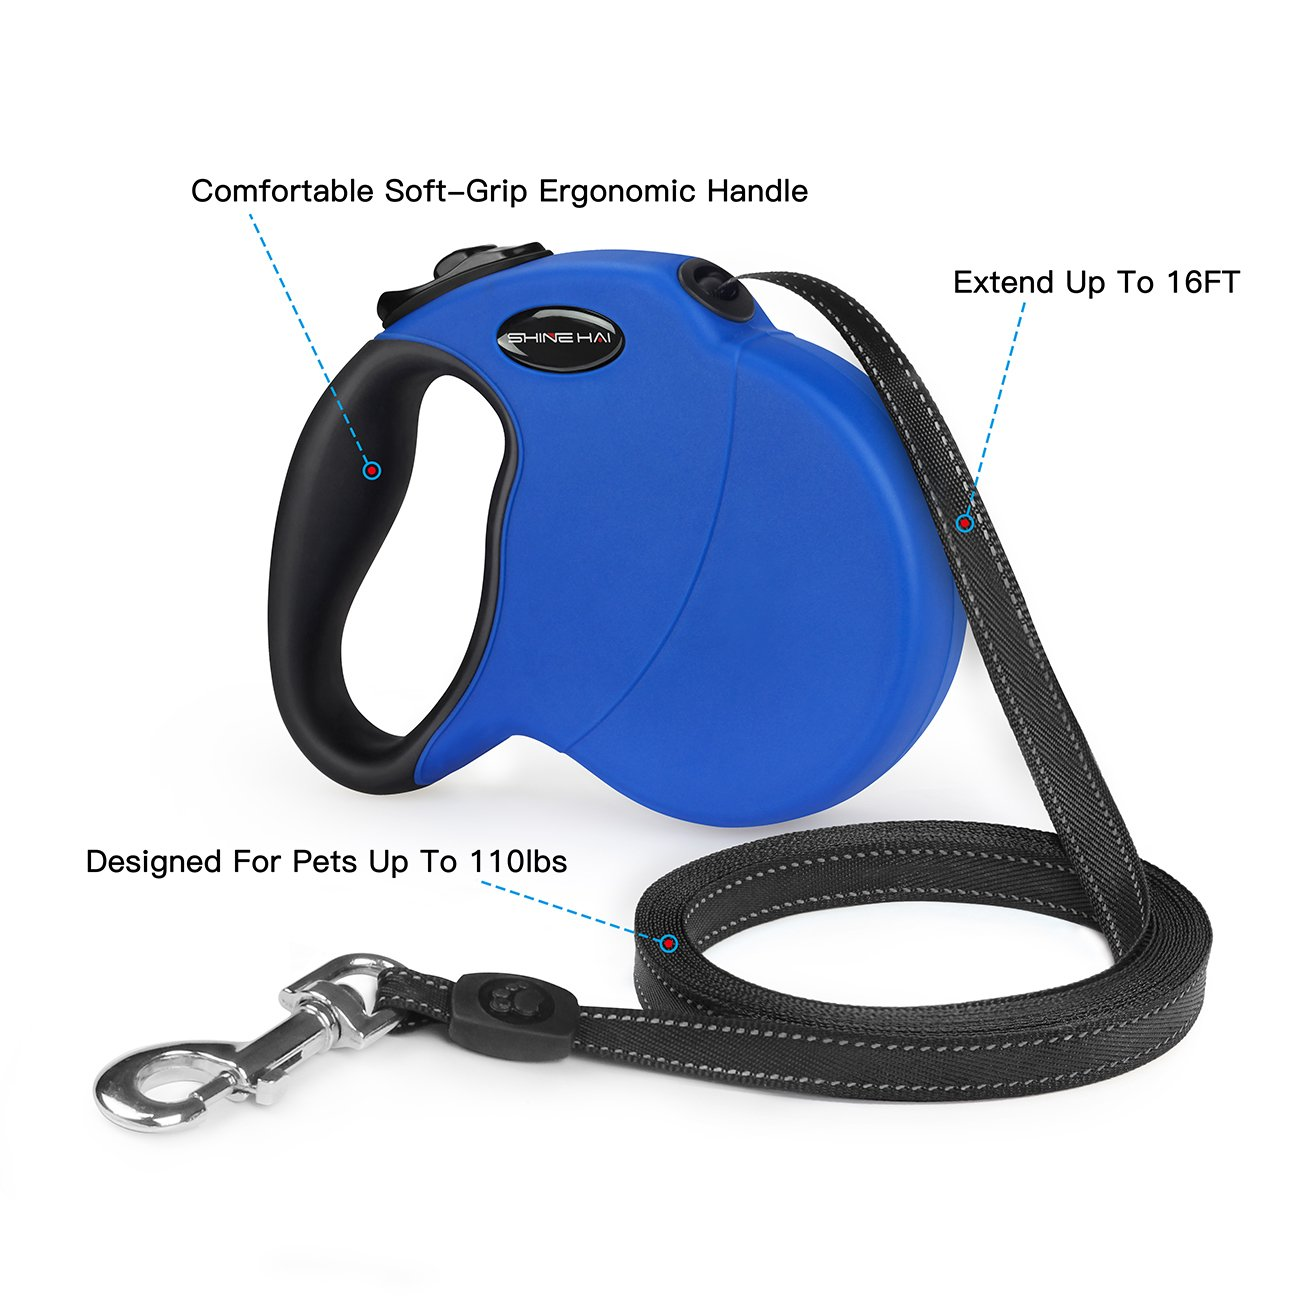 SHINE HAI Retractable Dog Leash, 16ft Dog Walking Leash for Large Medium Small Dog Up to 110lbs, Break & Lock System, Reflective Ribbon Cord, Blue by SHINE HAI (Image #2)